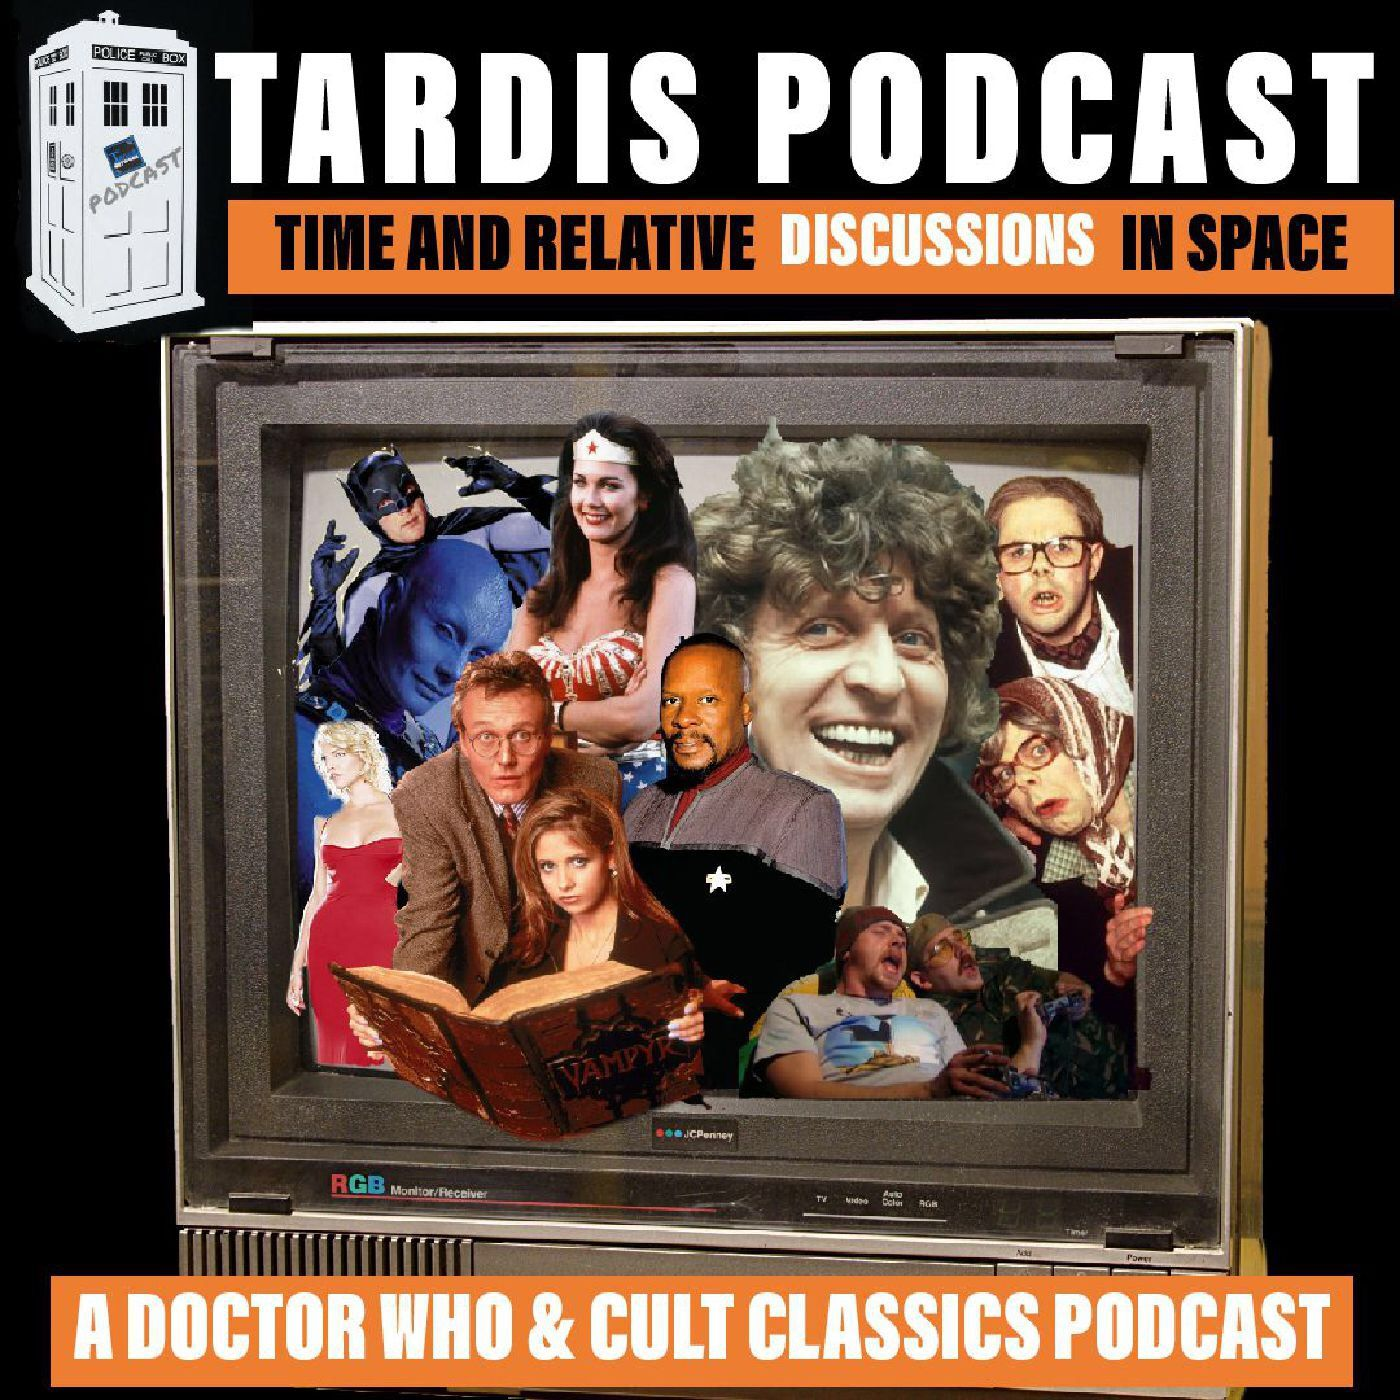 The Tardis podcast